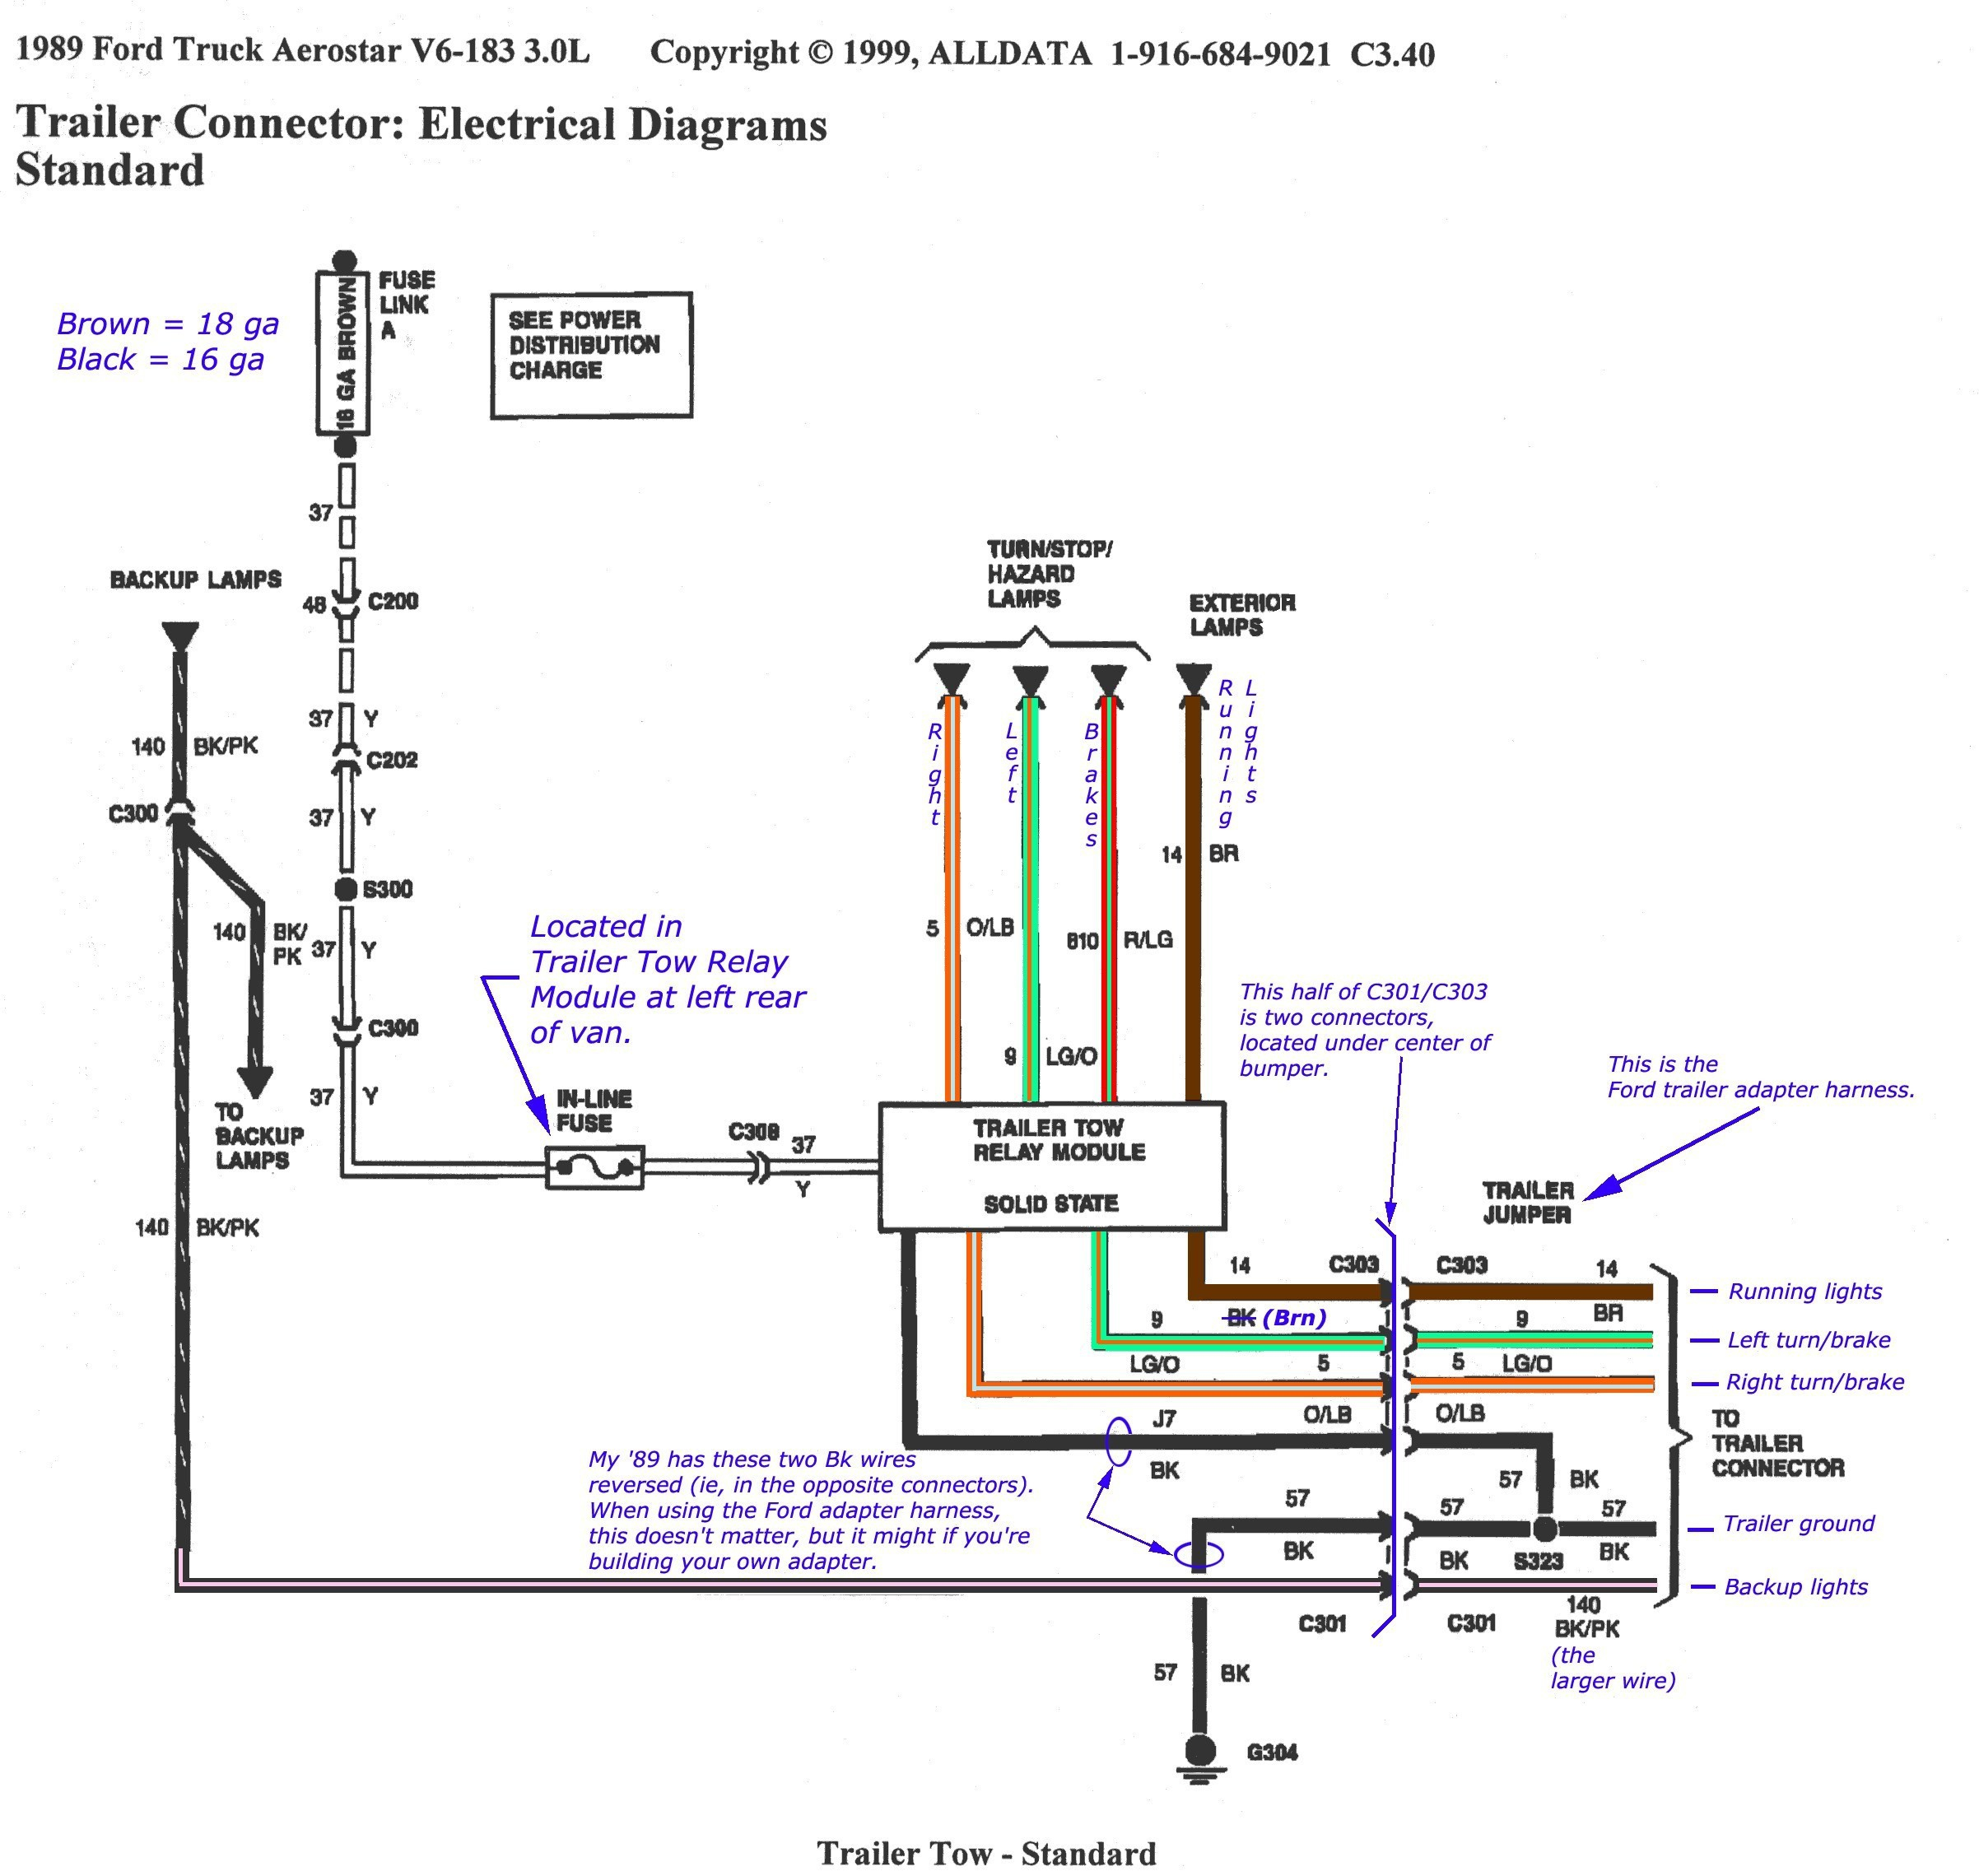 wilson trailer wiring diagrams wiring diagram data todaywilson trailer wiring diagram data wiring diagram wilson trailer wiring diagrams wilson hopper bottom trailer wiring